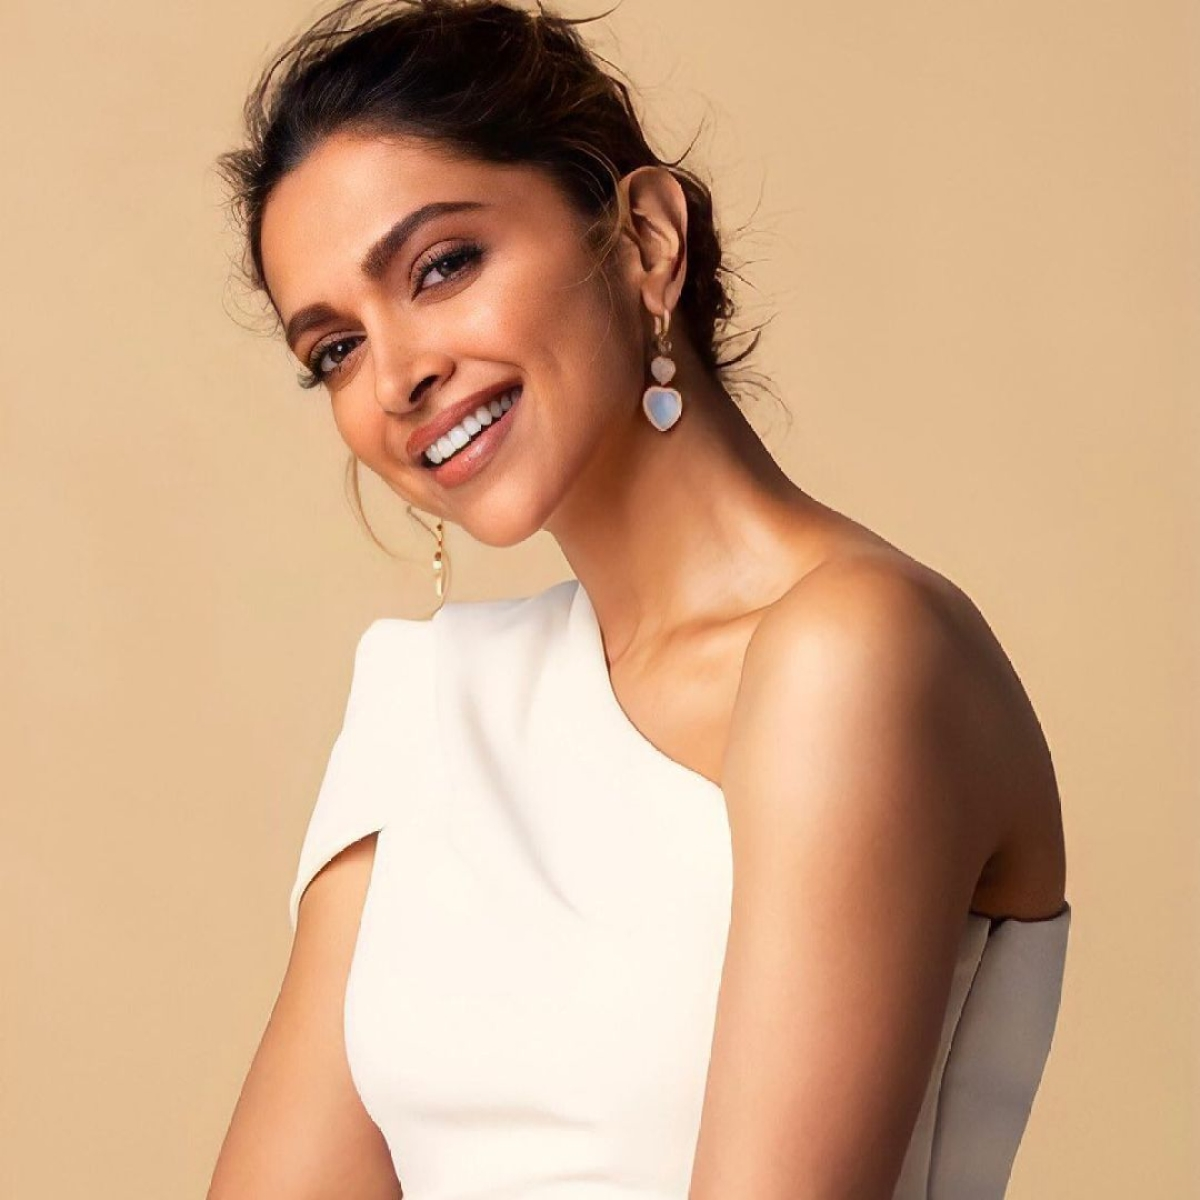 Deepika Padukone shares mental health helplines amid COVID-19 crisis, netizens ask actor to 'open her purse and donate' instead